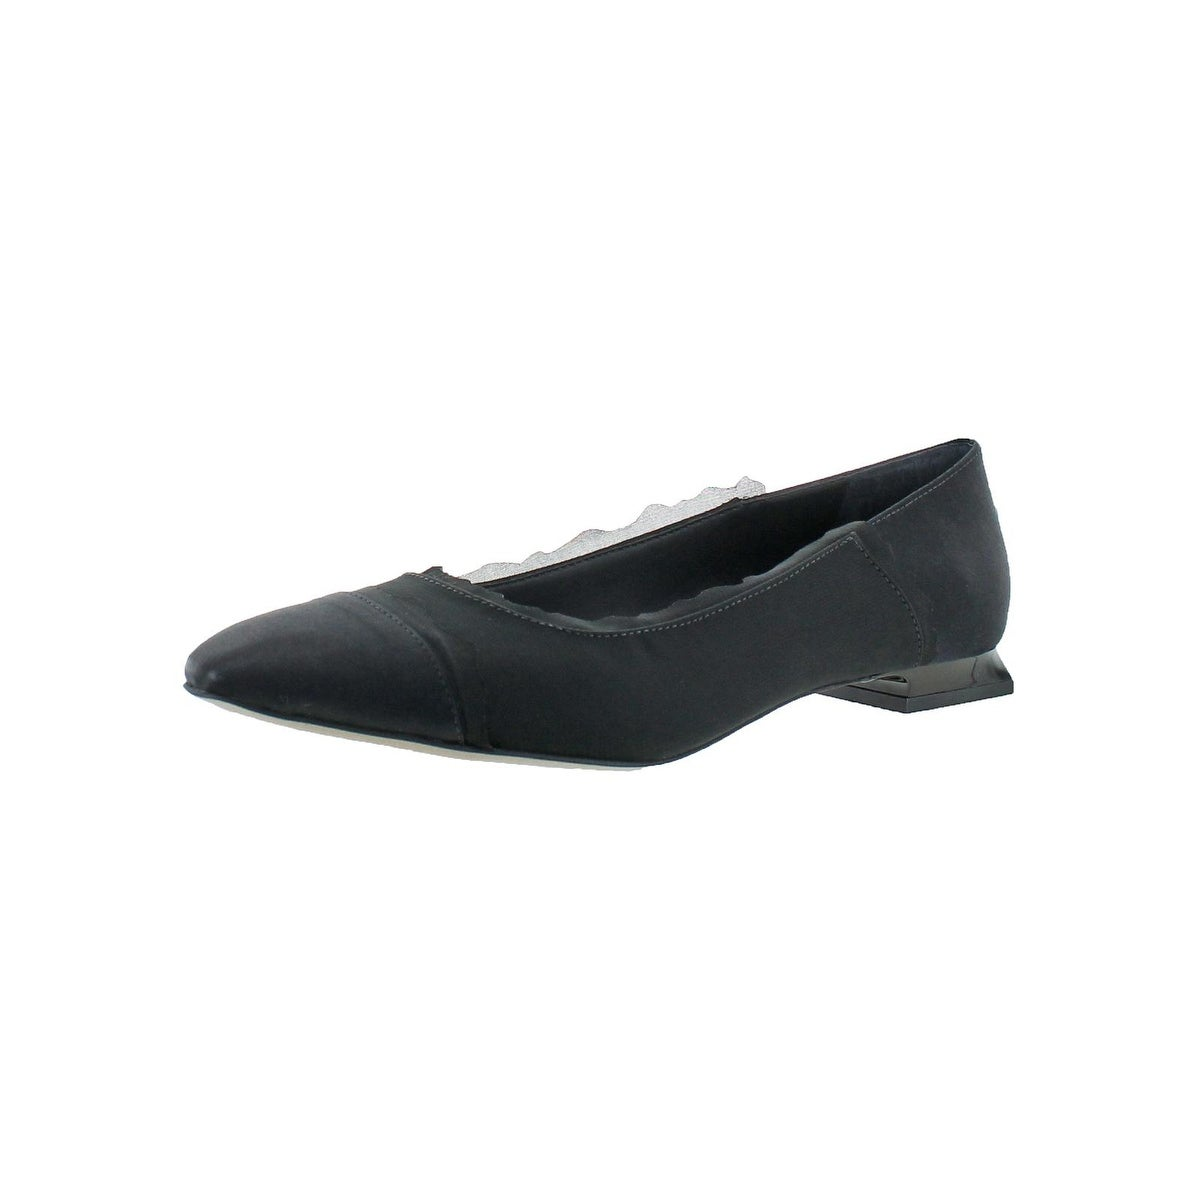 a4f6954f306 Buy Calvin Klein Women s Flats Online at Overstock